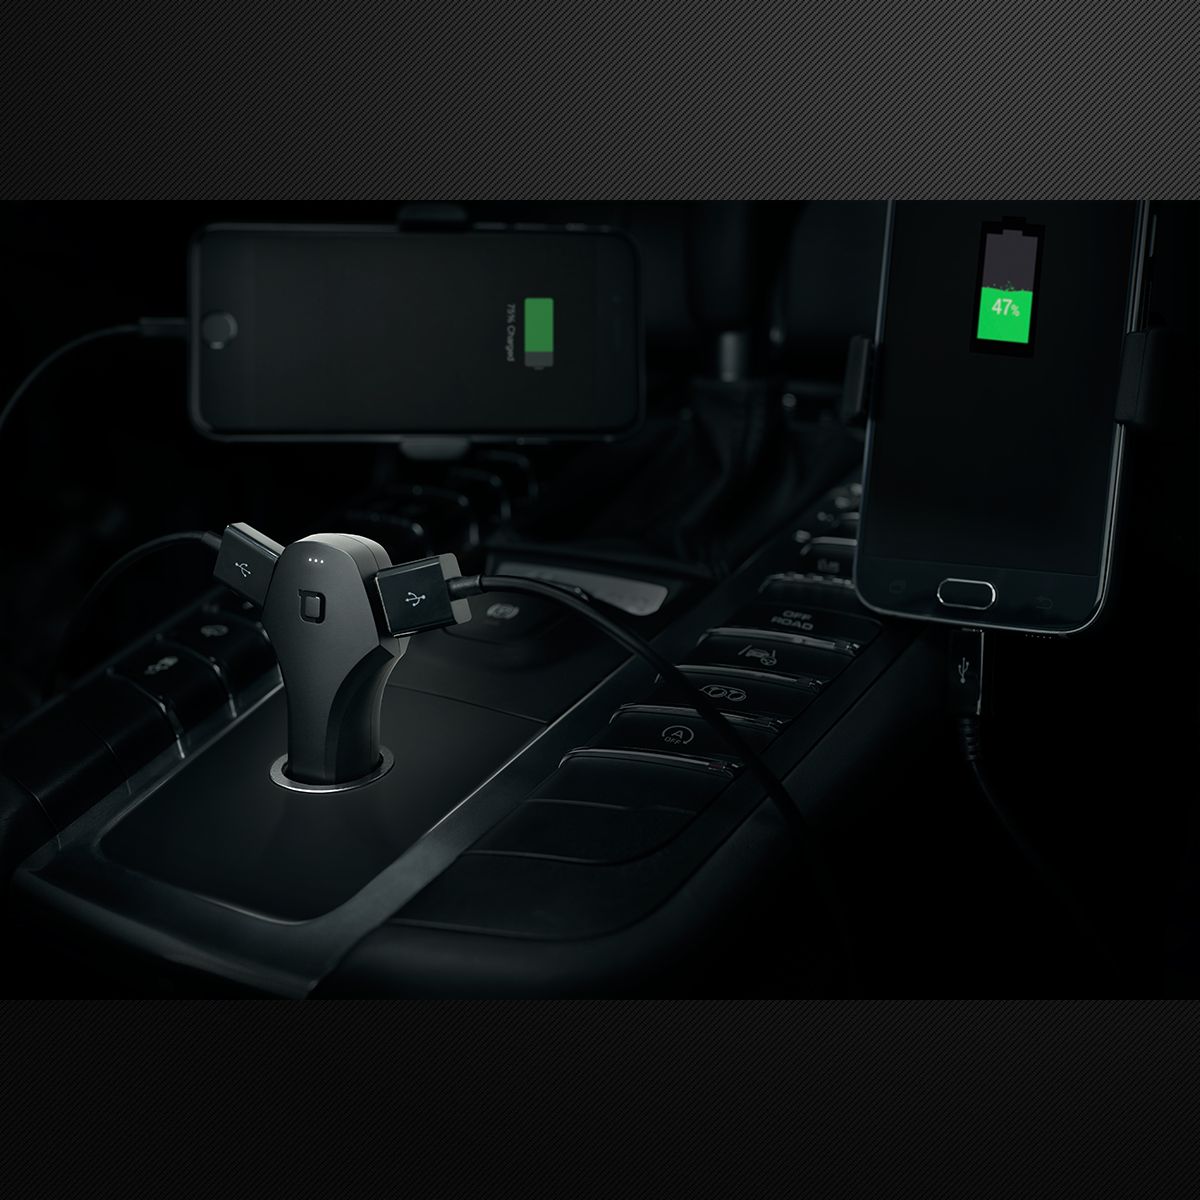 ZUS Smart Dual USB Car Charger & Locator